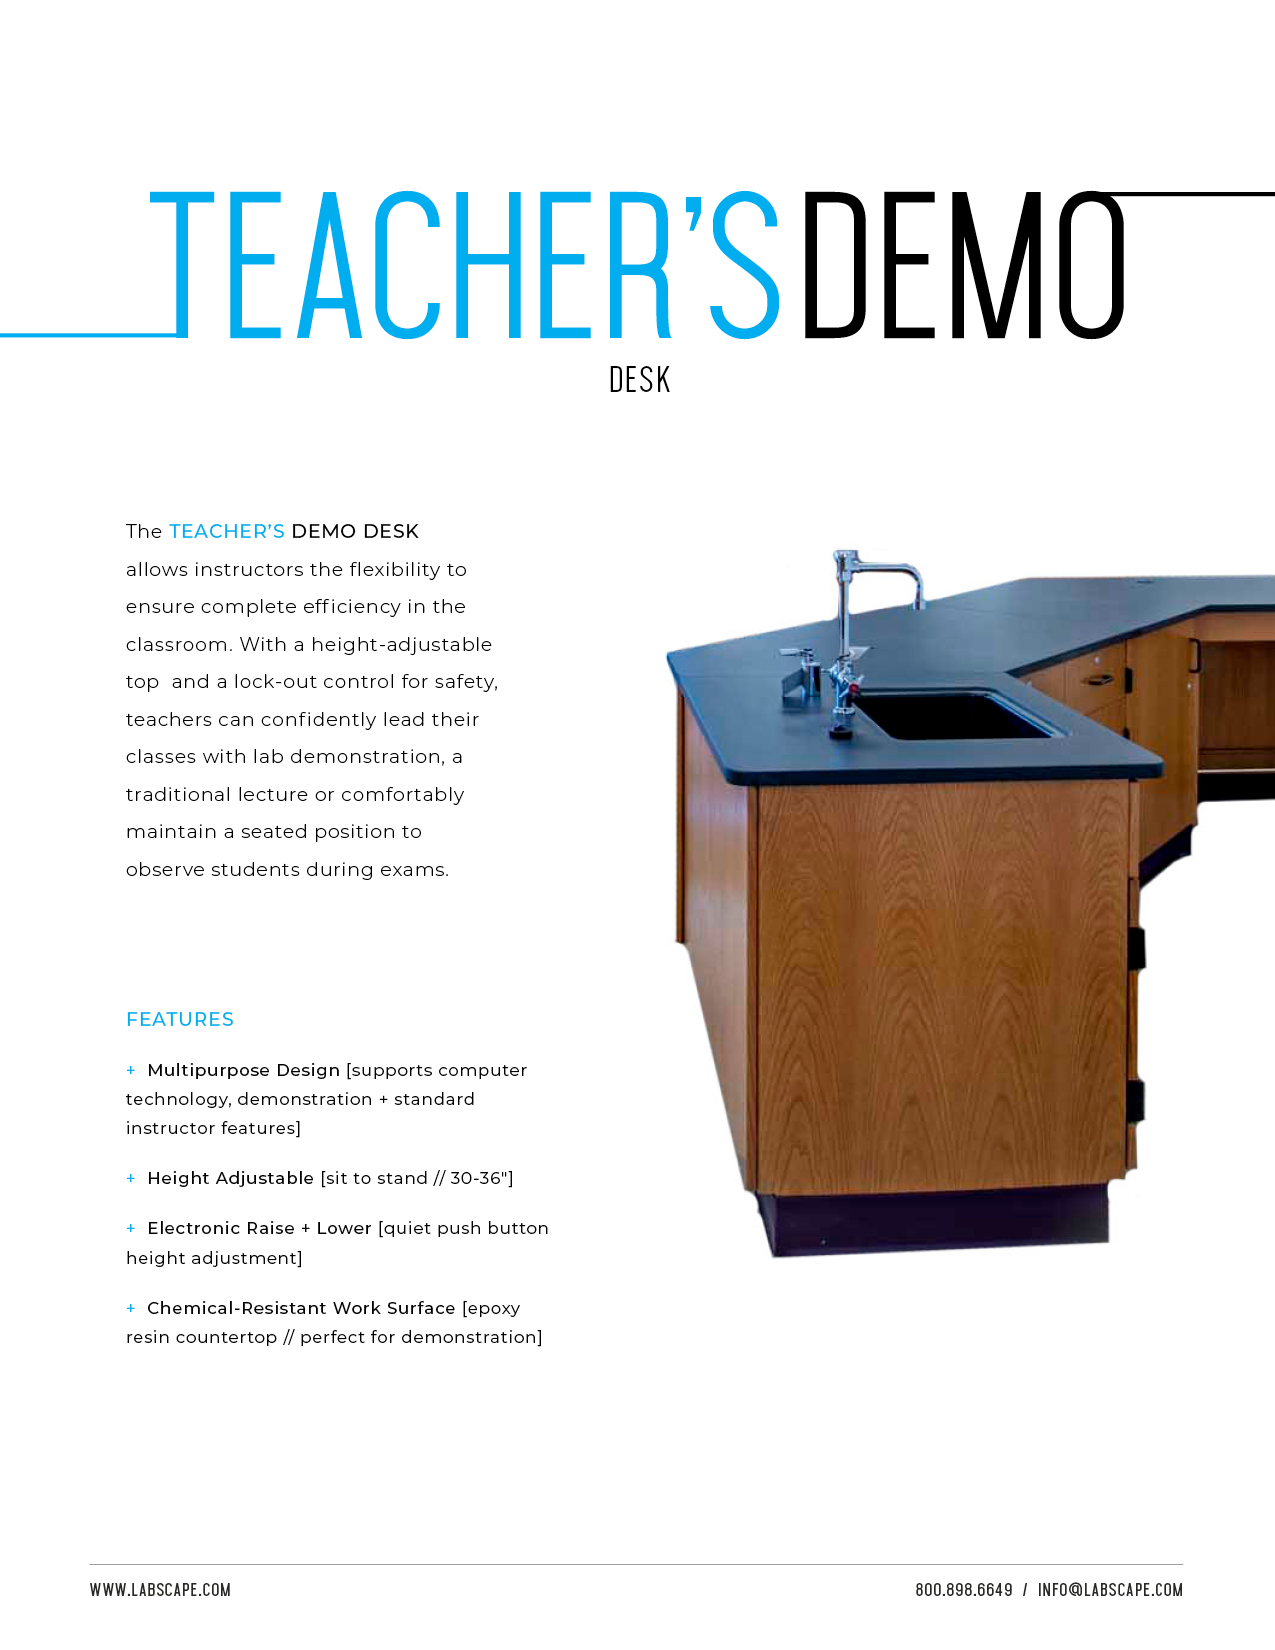 LS - TEACHER DEMO DESK.jpg